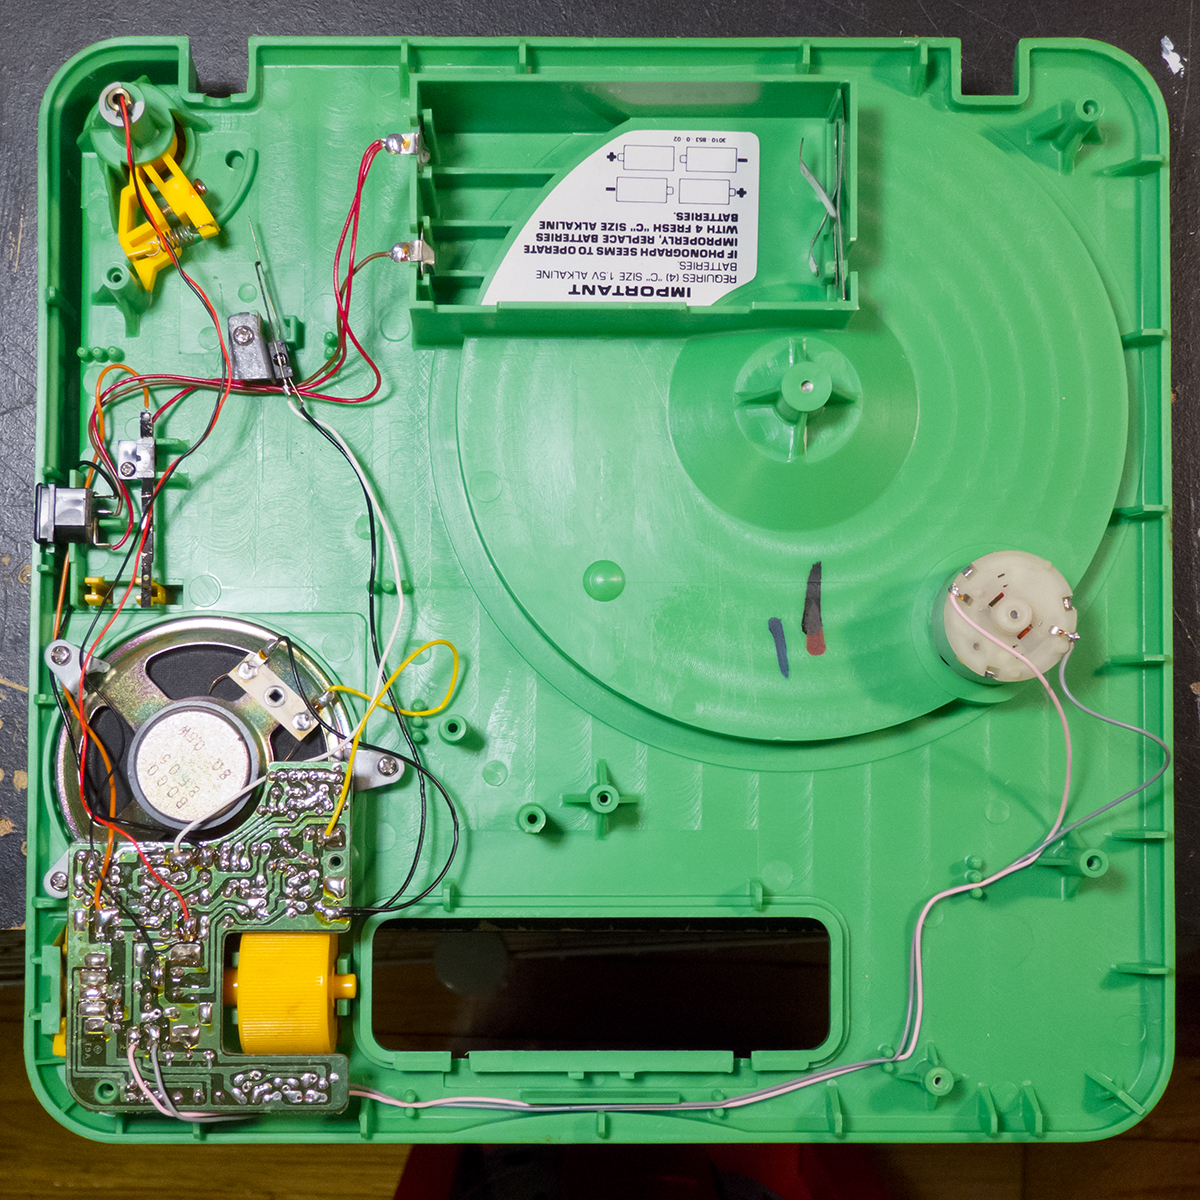 Fisher Price 816 Record Player Repair Zach Poff Electronic Circuit Board Field Service Inside Bottom